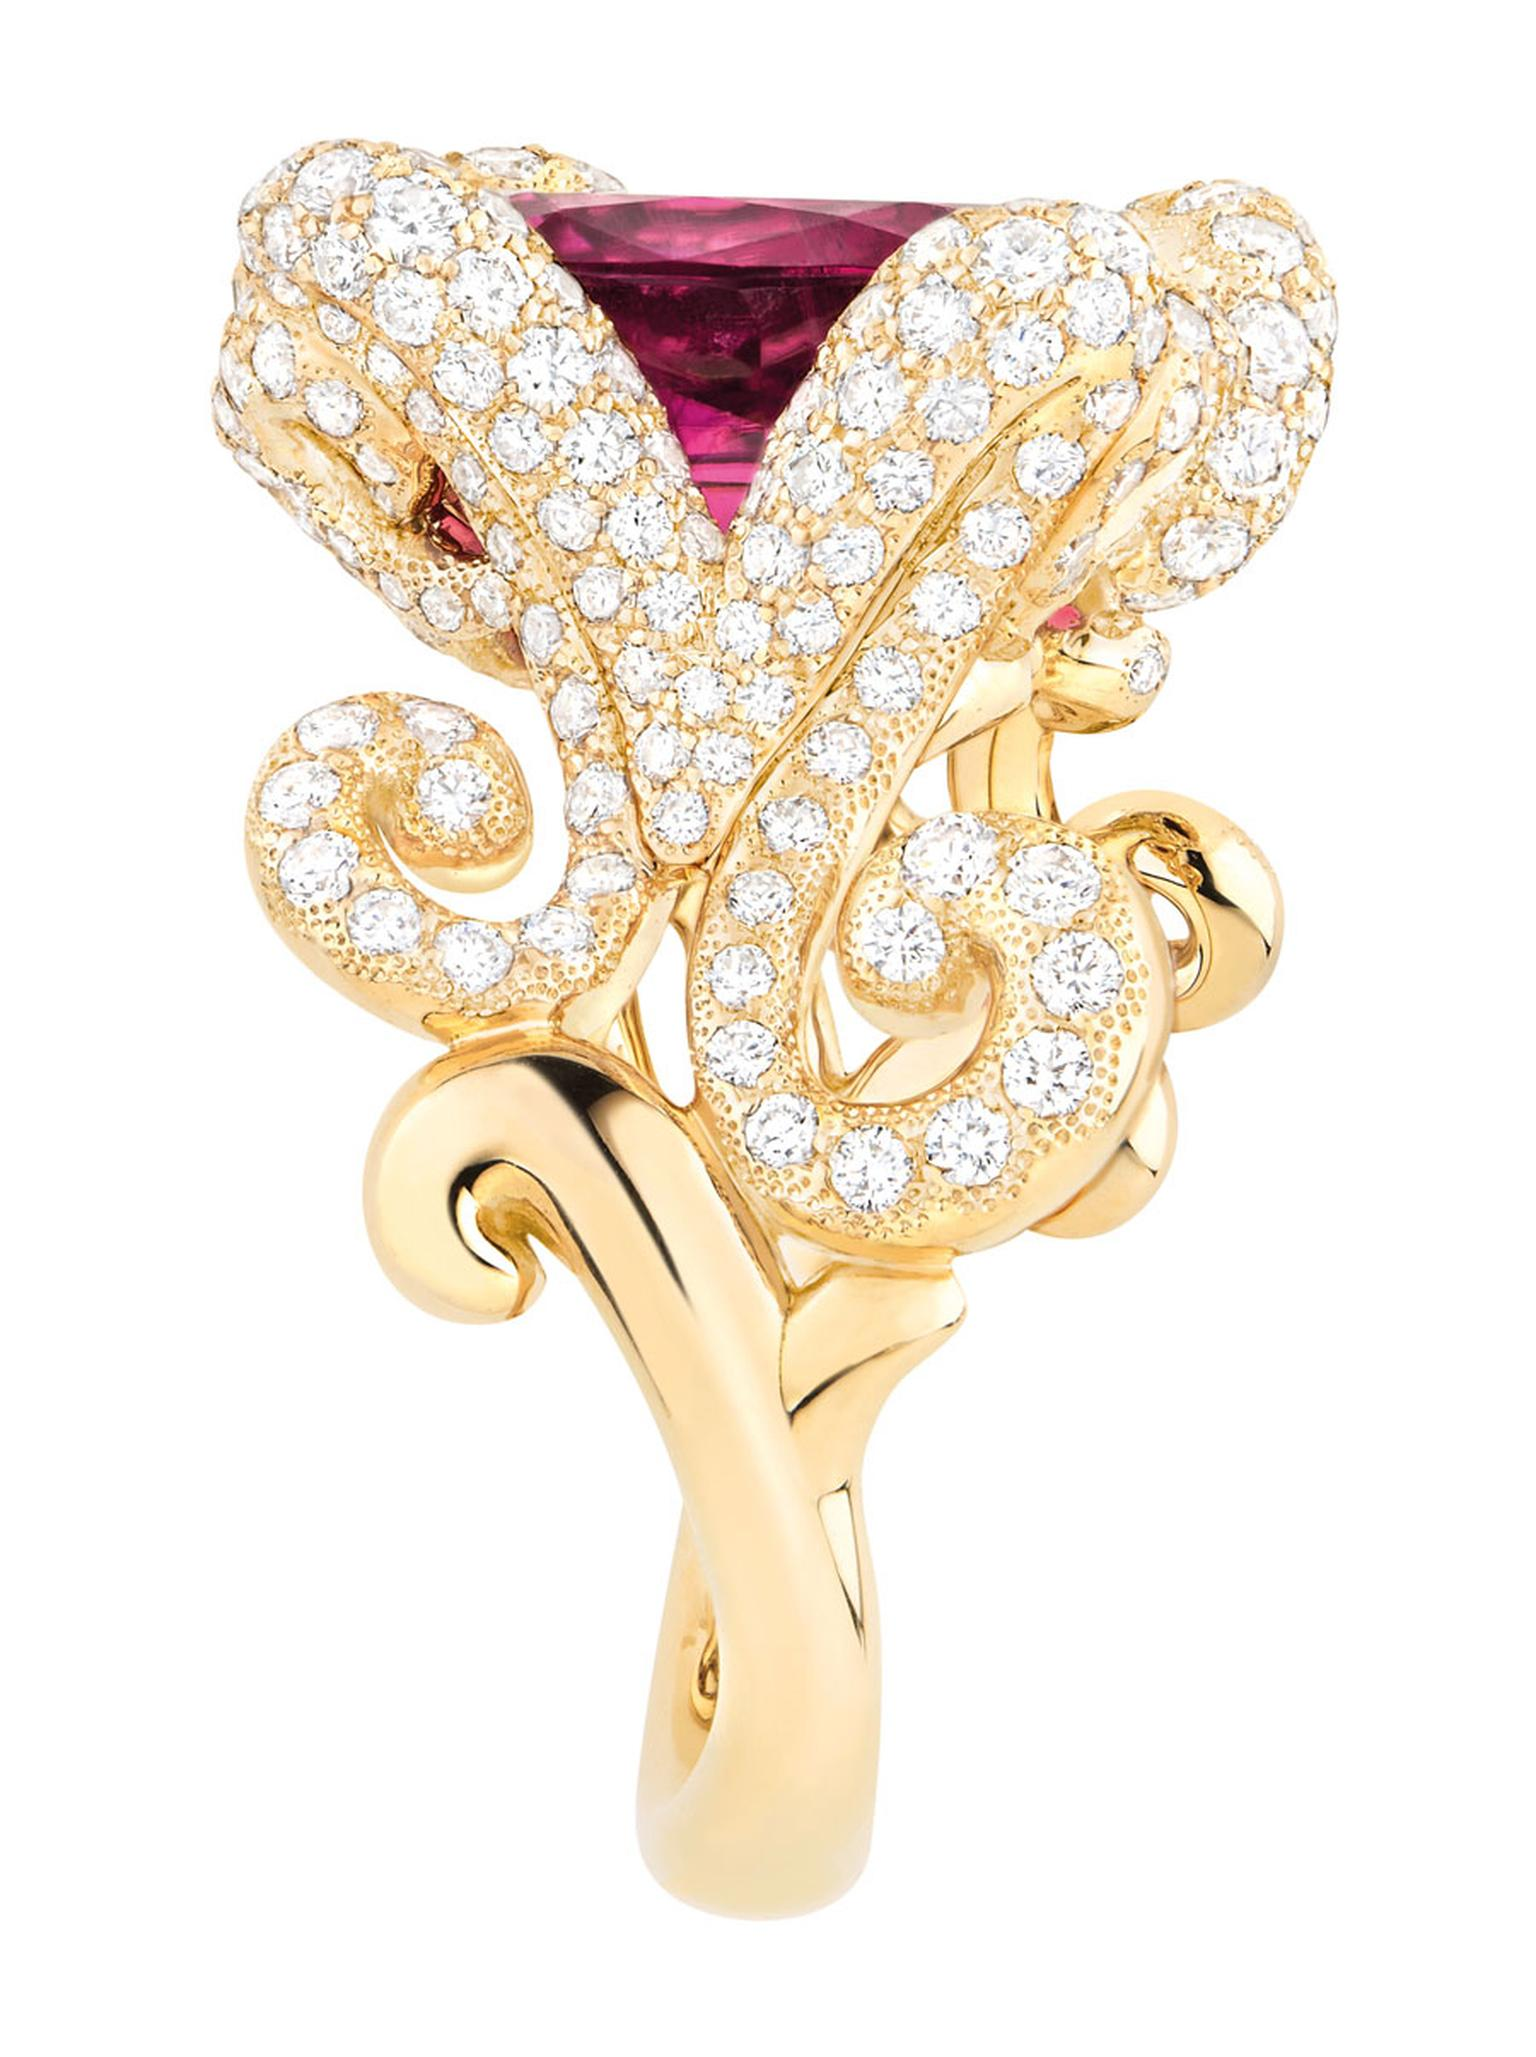 Dior-MA-BAGUE-RING-FUCHSIA-TOURMALINE.jpg